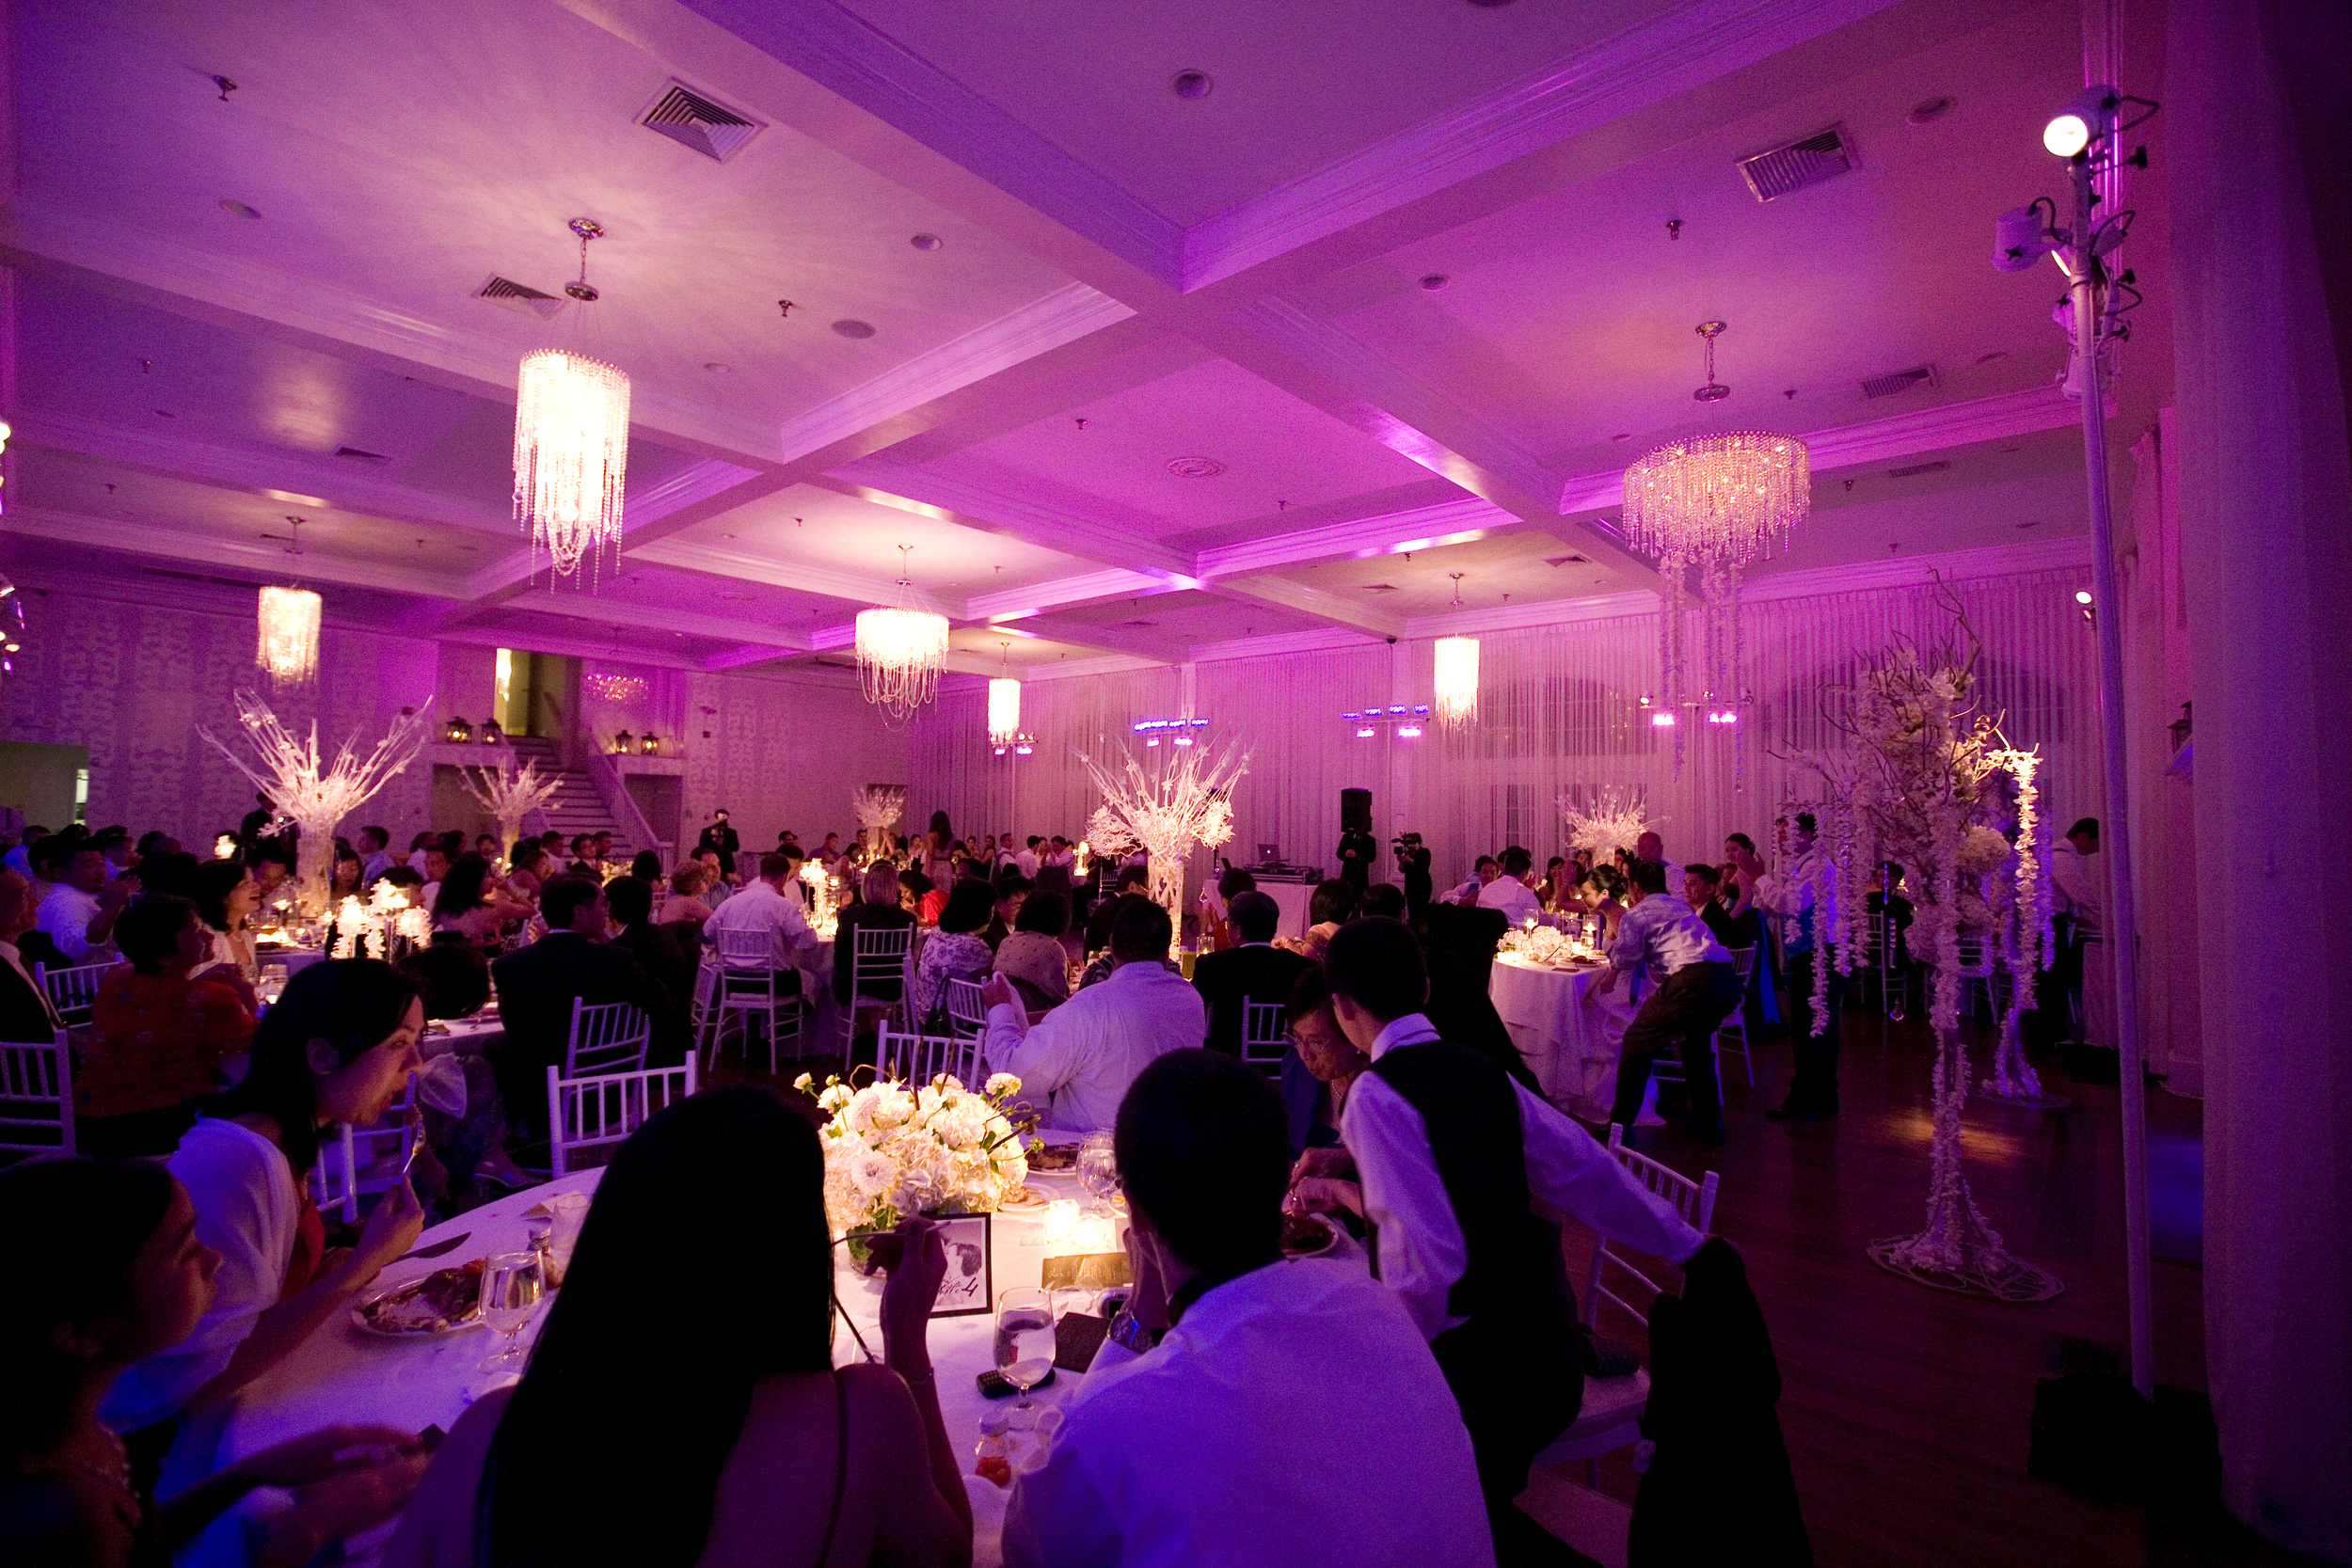 Deeper lighting really makes the room glow while guests are eating and getting ready to dance soon!